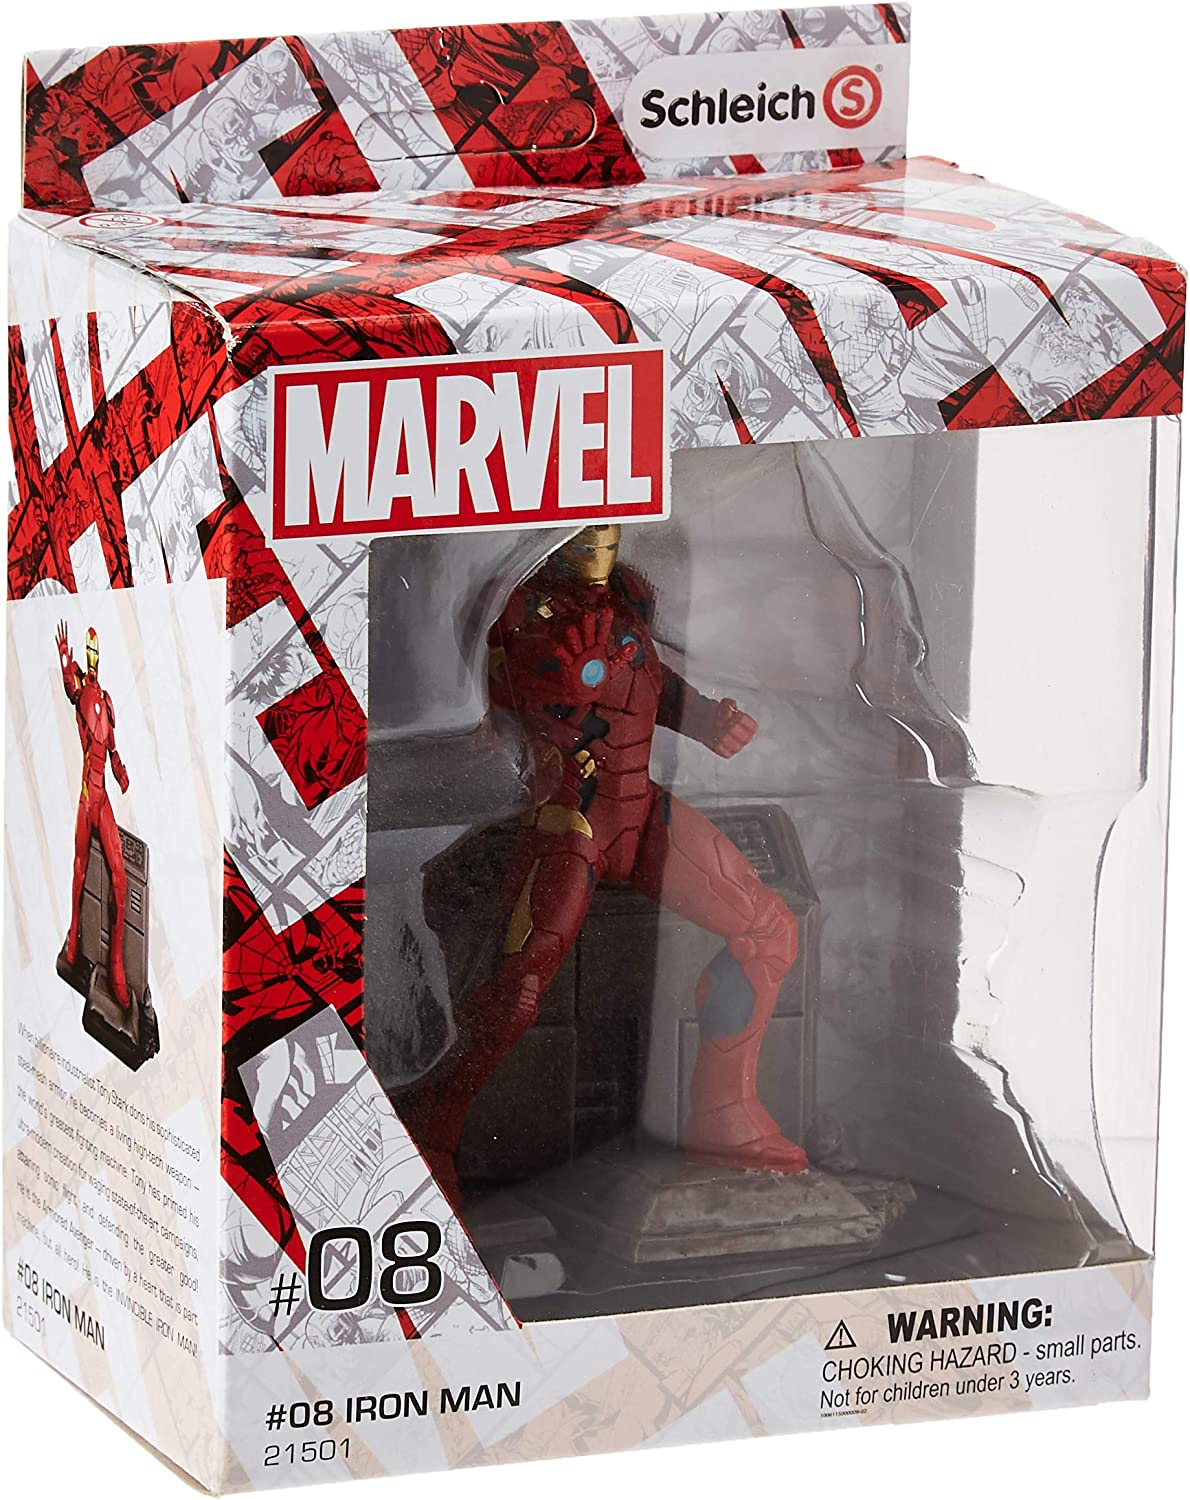 SCHLEICH Marvel Iron Super-cheap Man Character Diorama Figure Action shopping